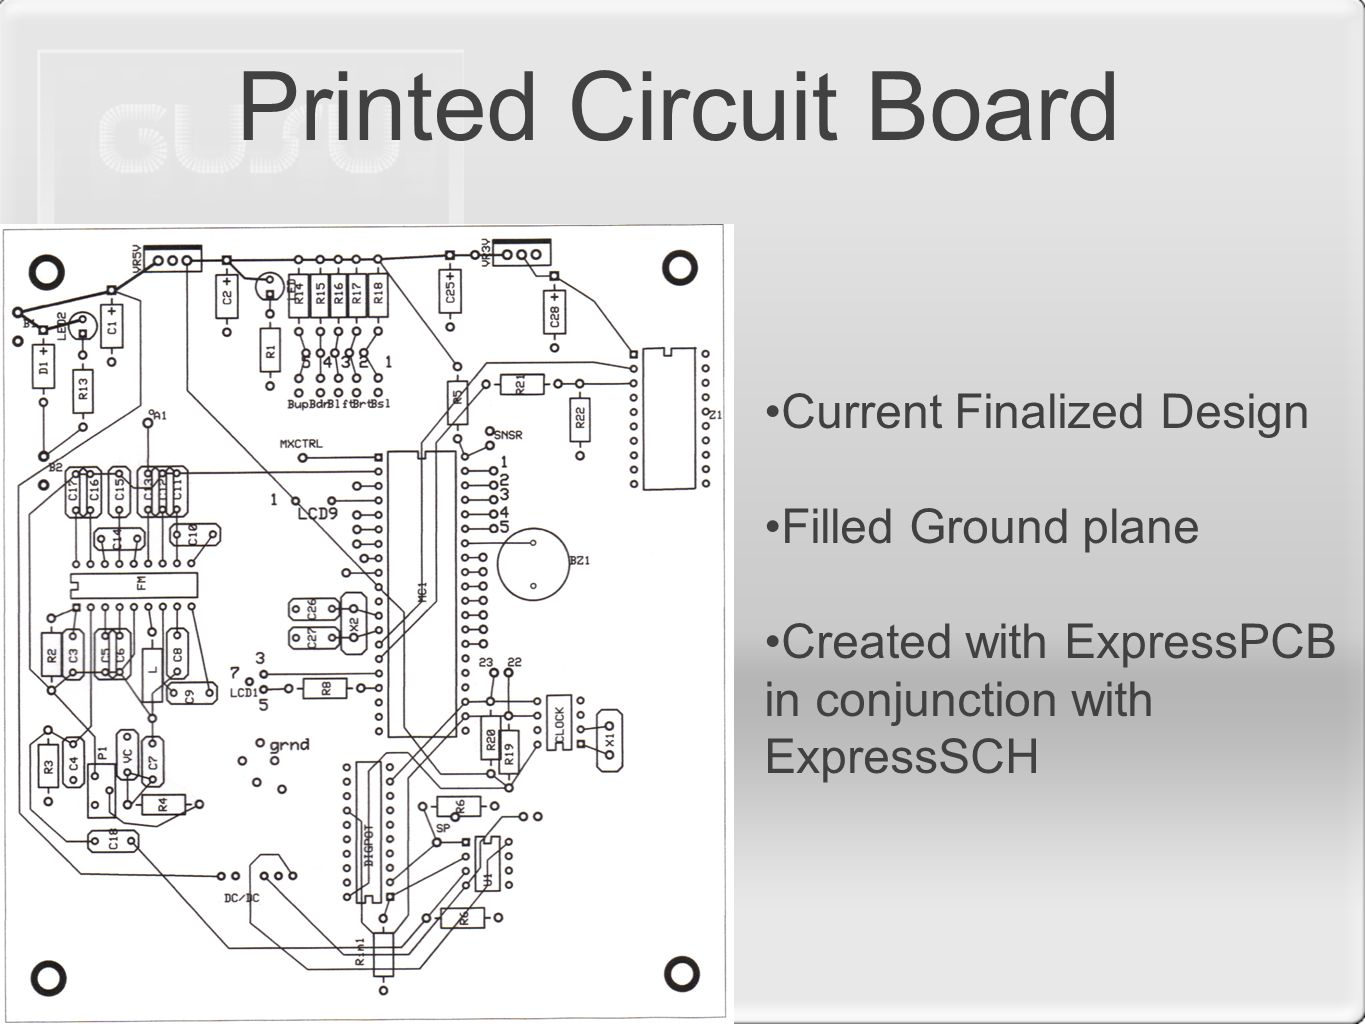 Printed Circuit Board Current Finalized Design Filled Ground plane Created with ExpressPCB in conjunction with ExpressSCH